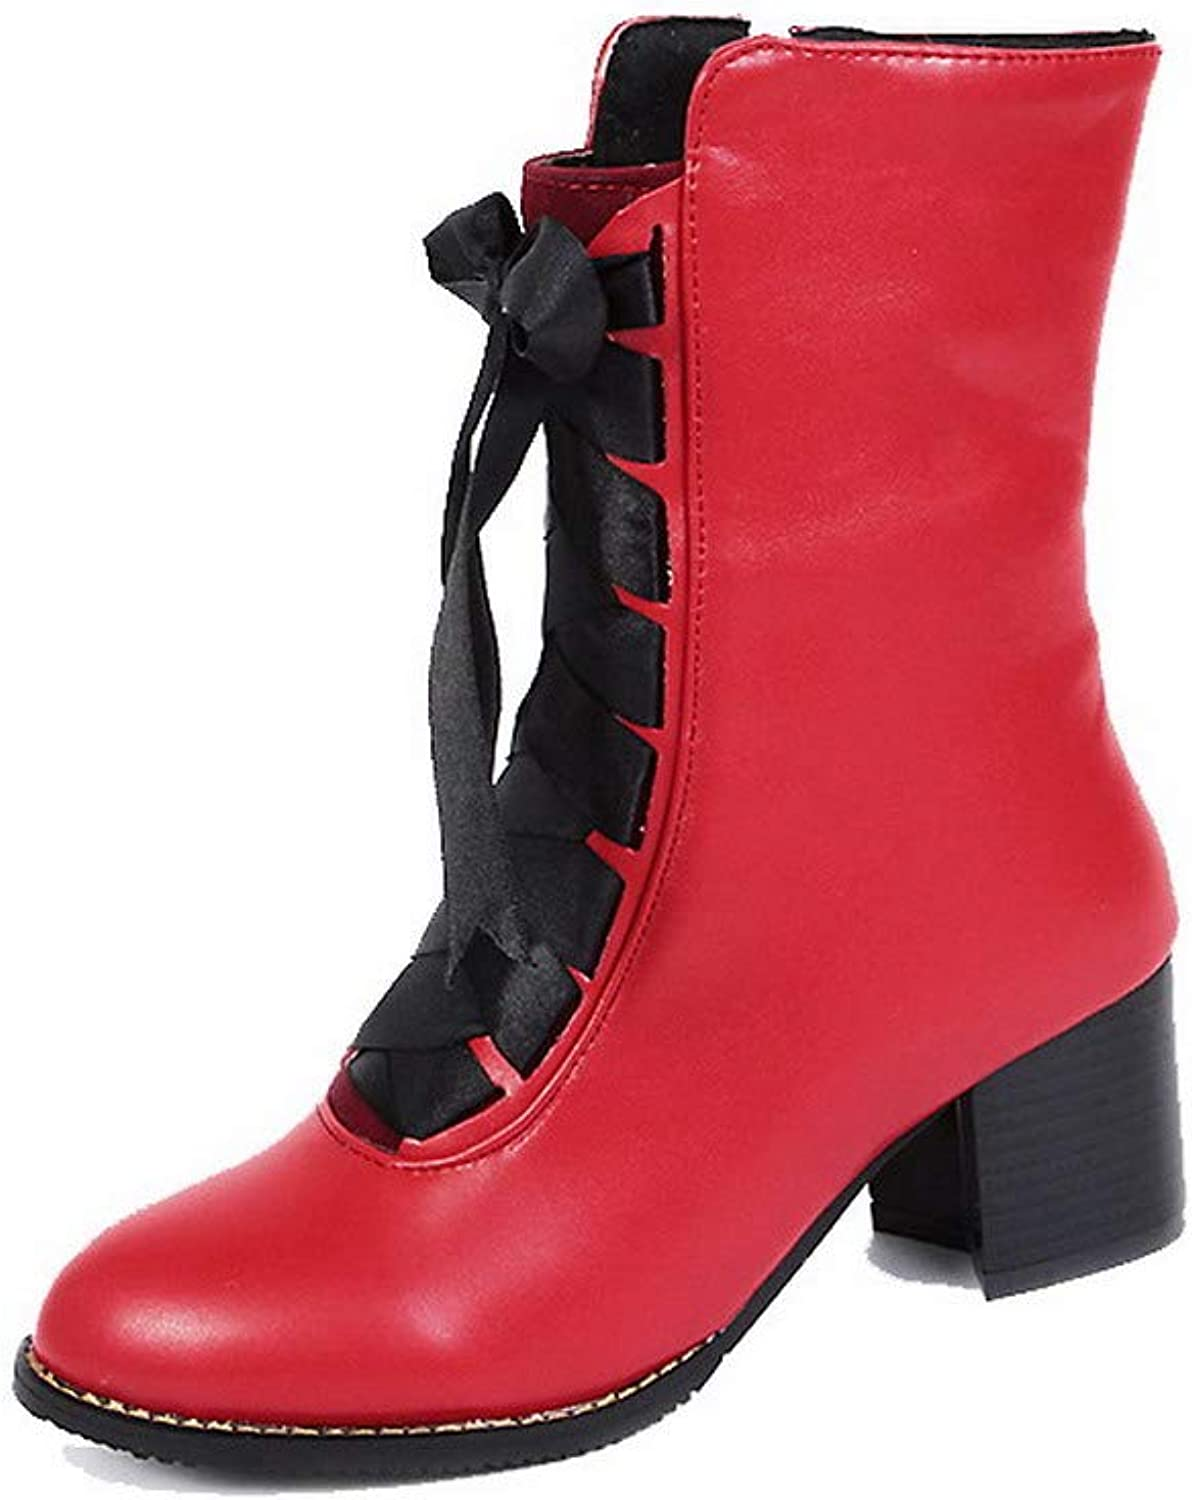 AllhqFashion Women's Solid Pu Kitten-Heels Zipper Round-Toe Boots, FBUXD126511